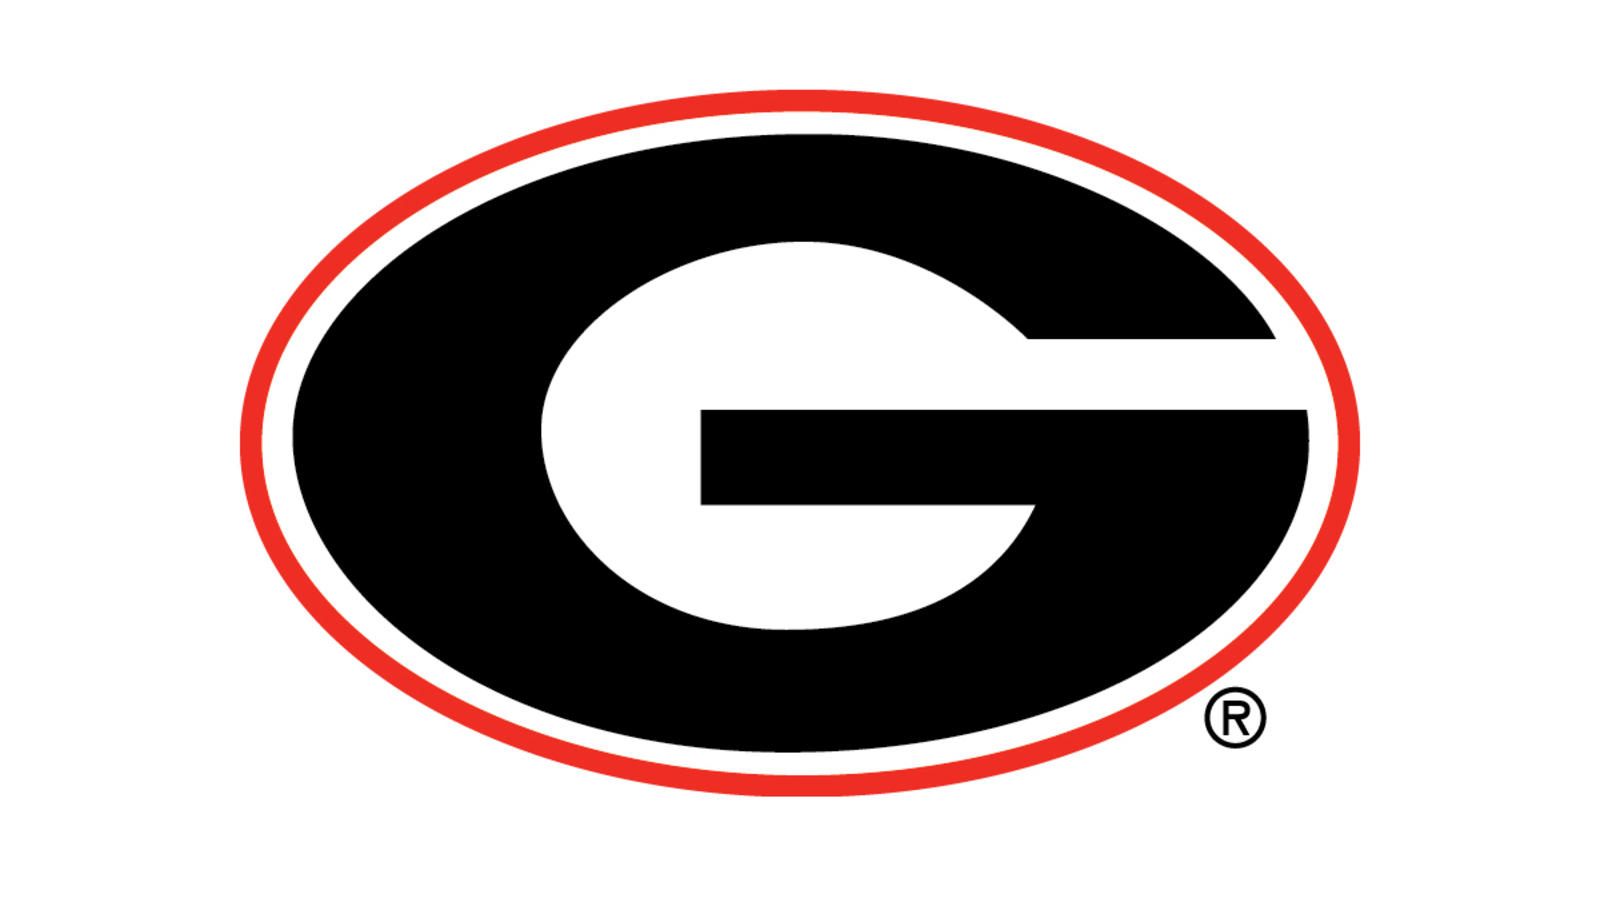 Georgia Power G Logo